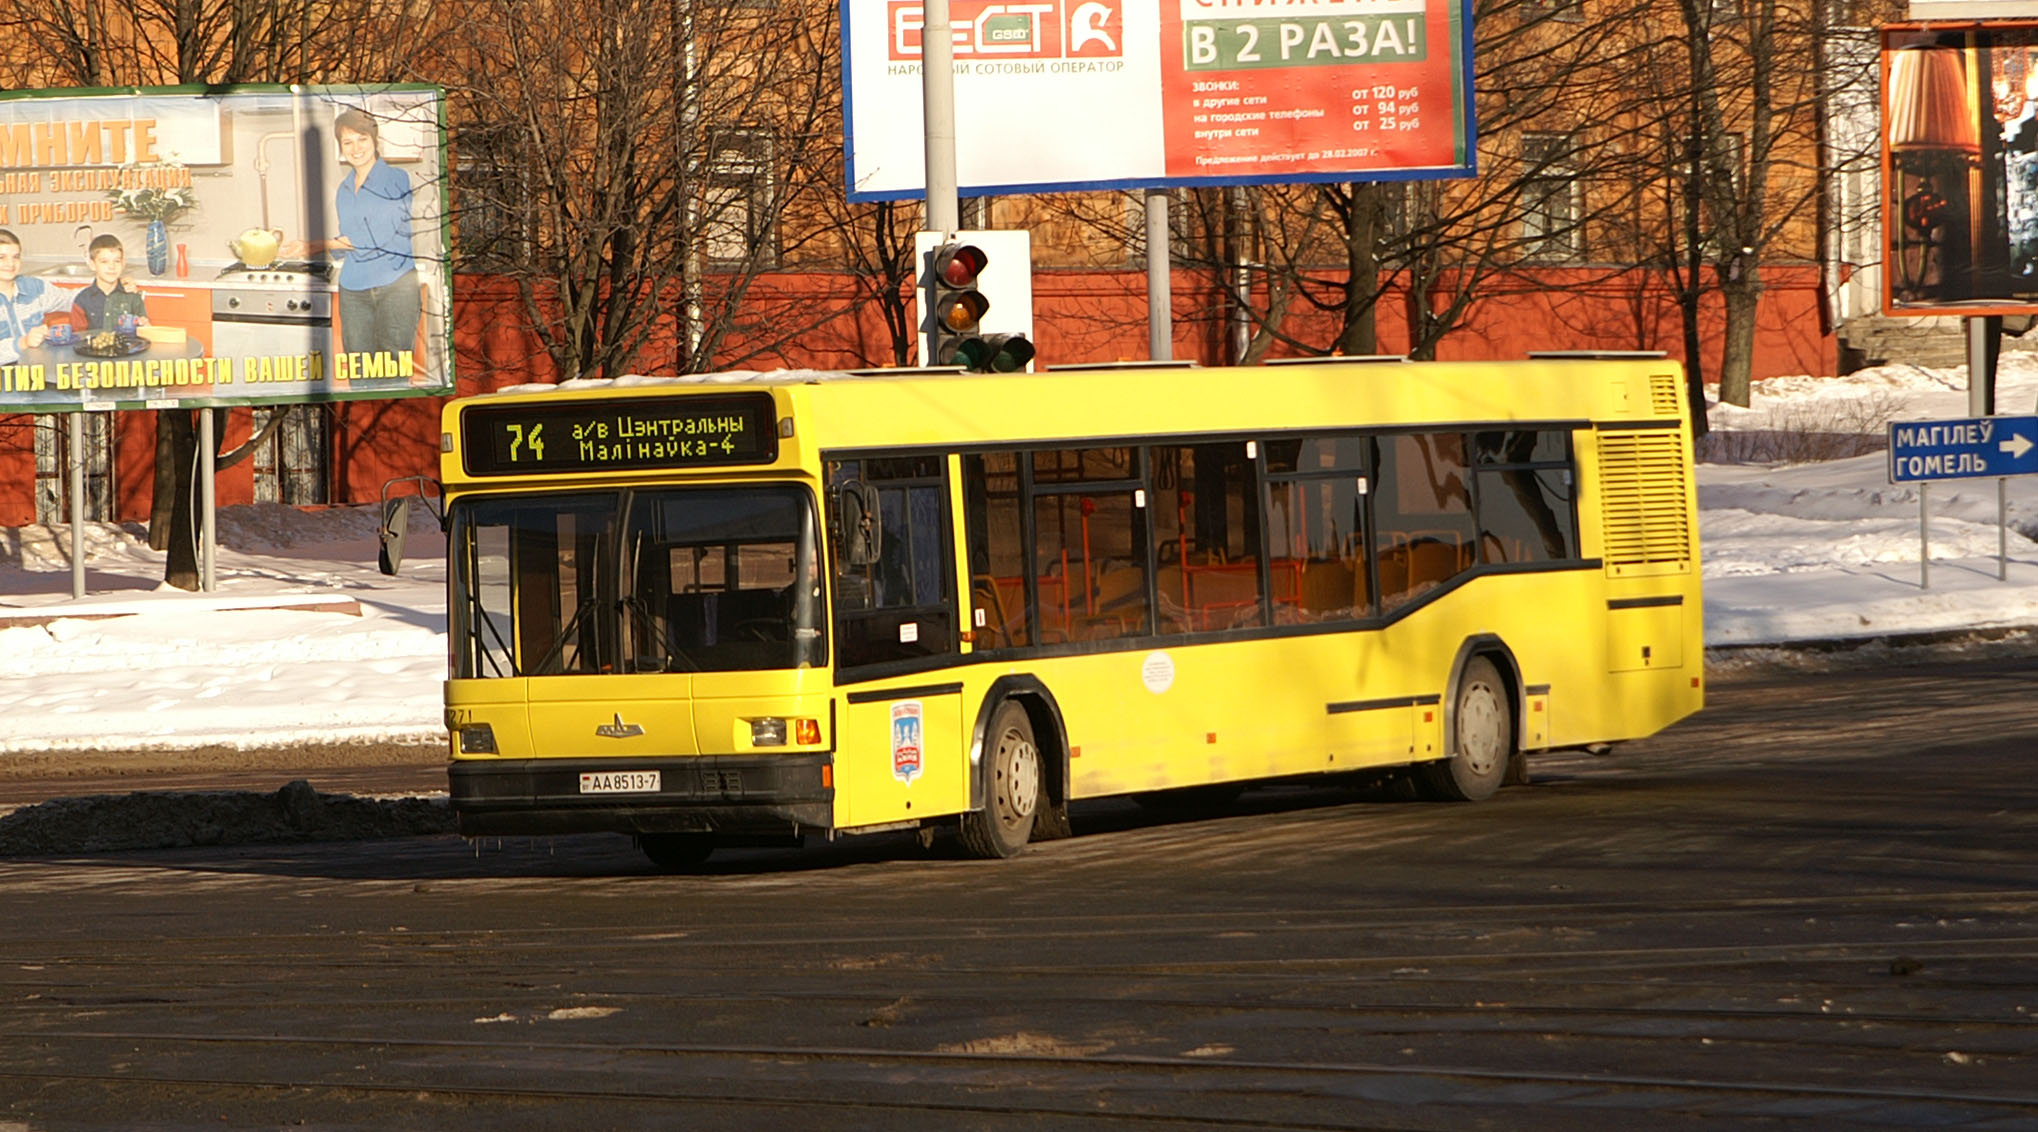 File:MAZ-103 in Minsk 01.jpg - Wikimedia Commons